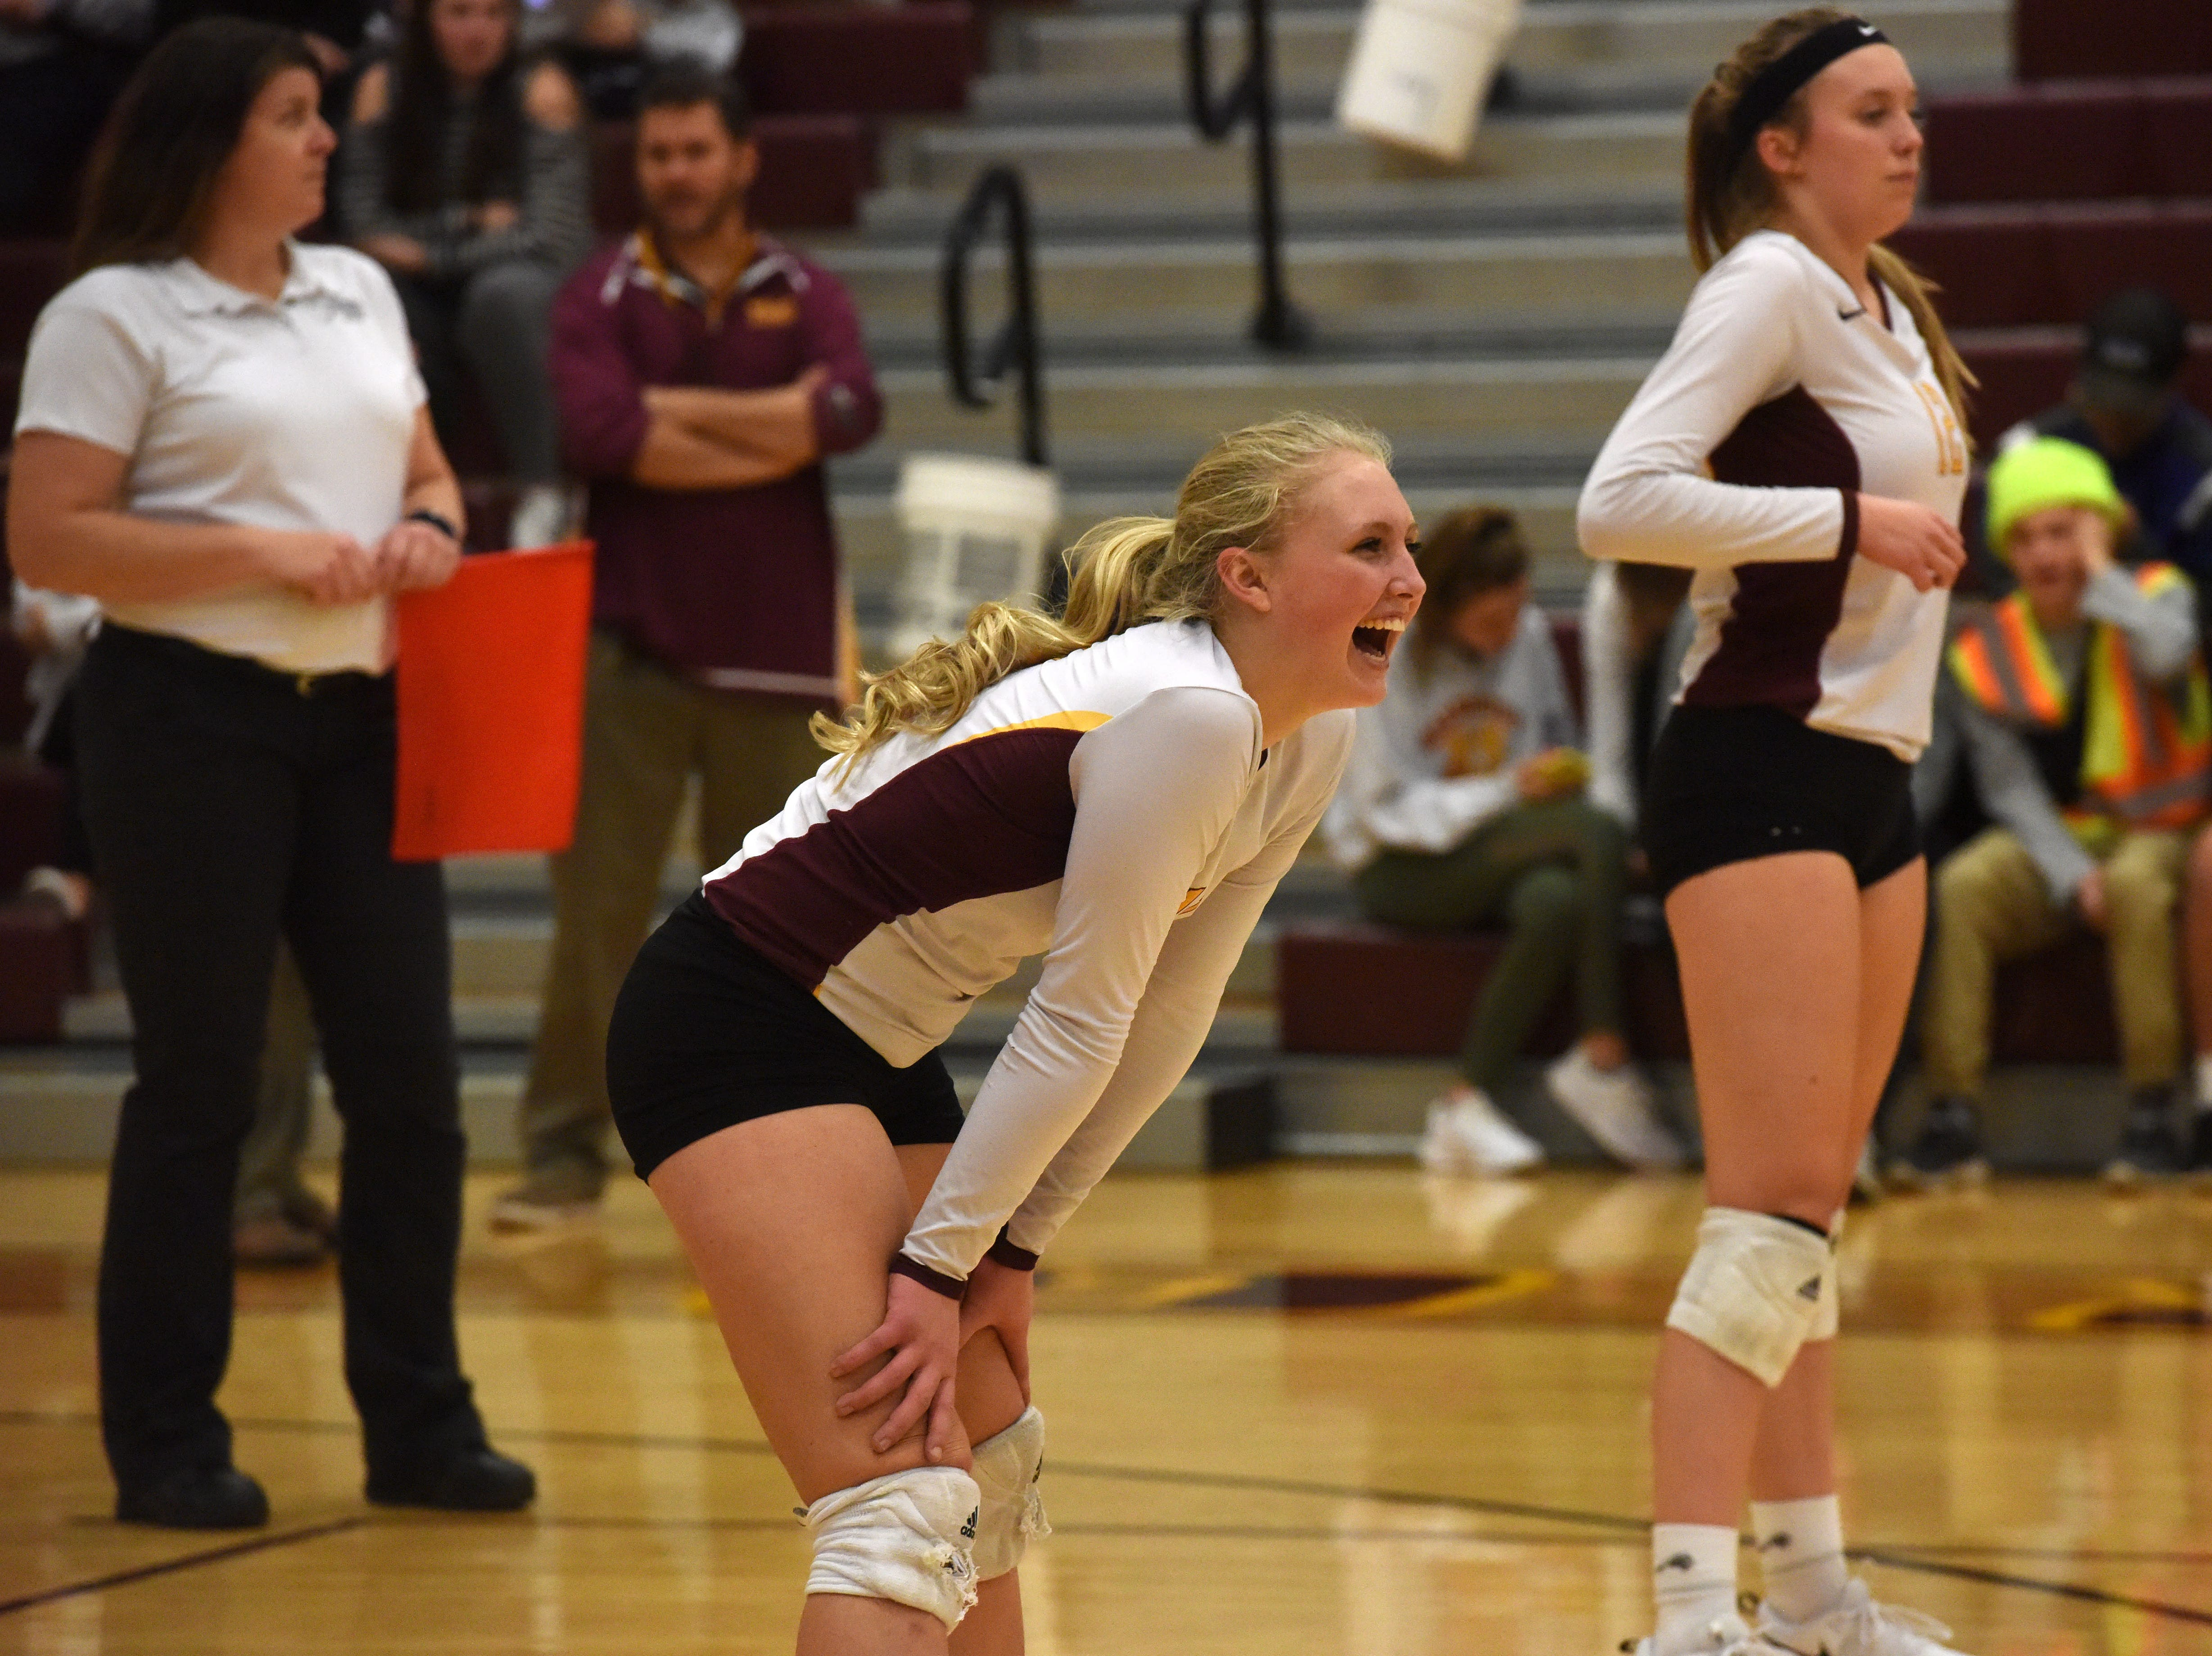 Harrisburg's Abby Meister (11) reacts during a match against Brookings Tuesday, Oct. 30, 2018 in Harrisburg, S.D.